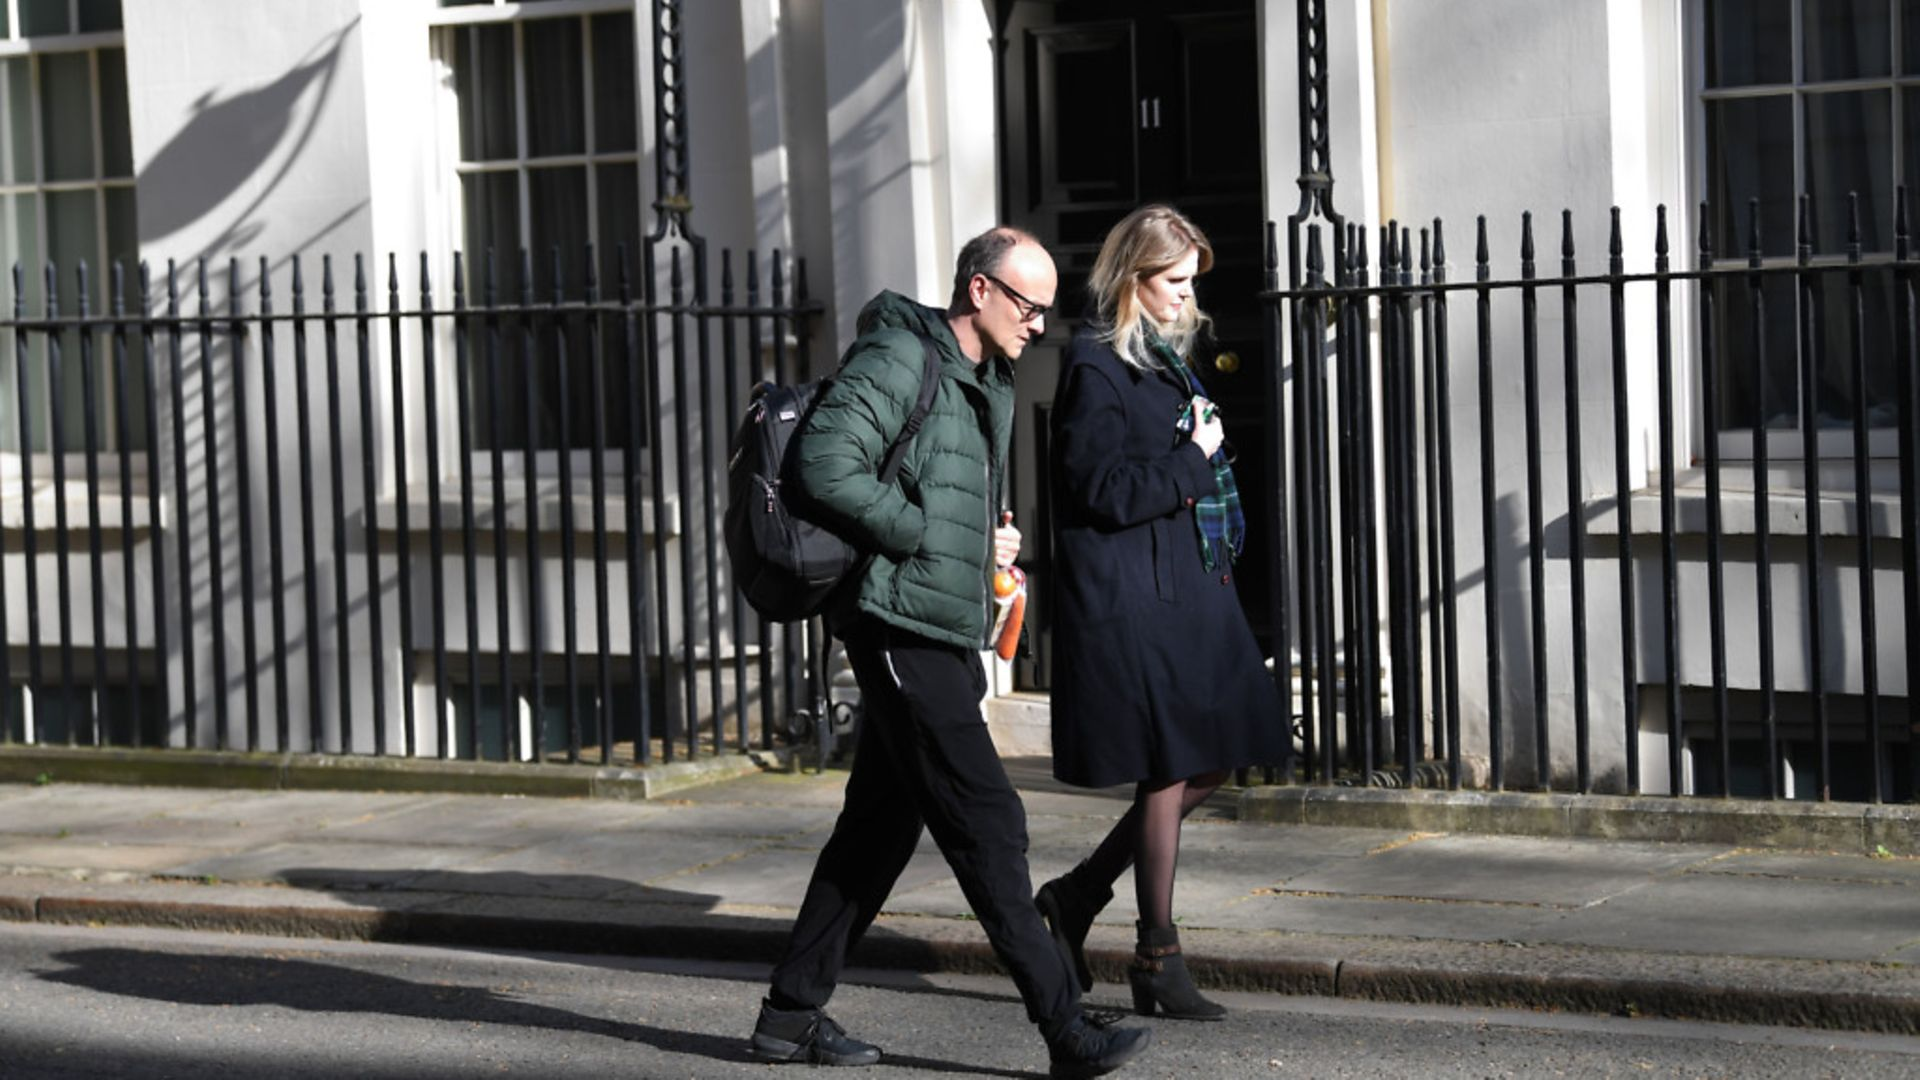 Prime Minister Boris Johnson's key adviser Dominic Cummings and his assistant Cleo Watson arrive in Downing Street - Credit: PA